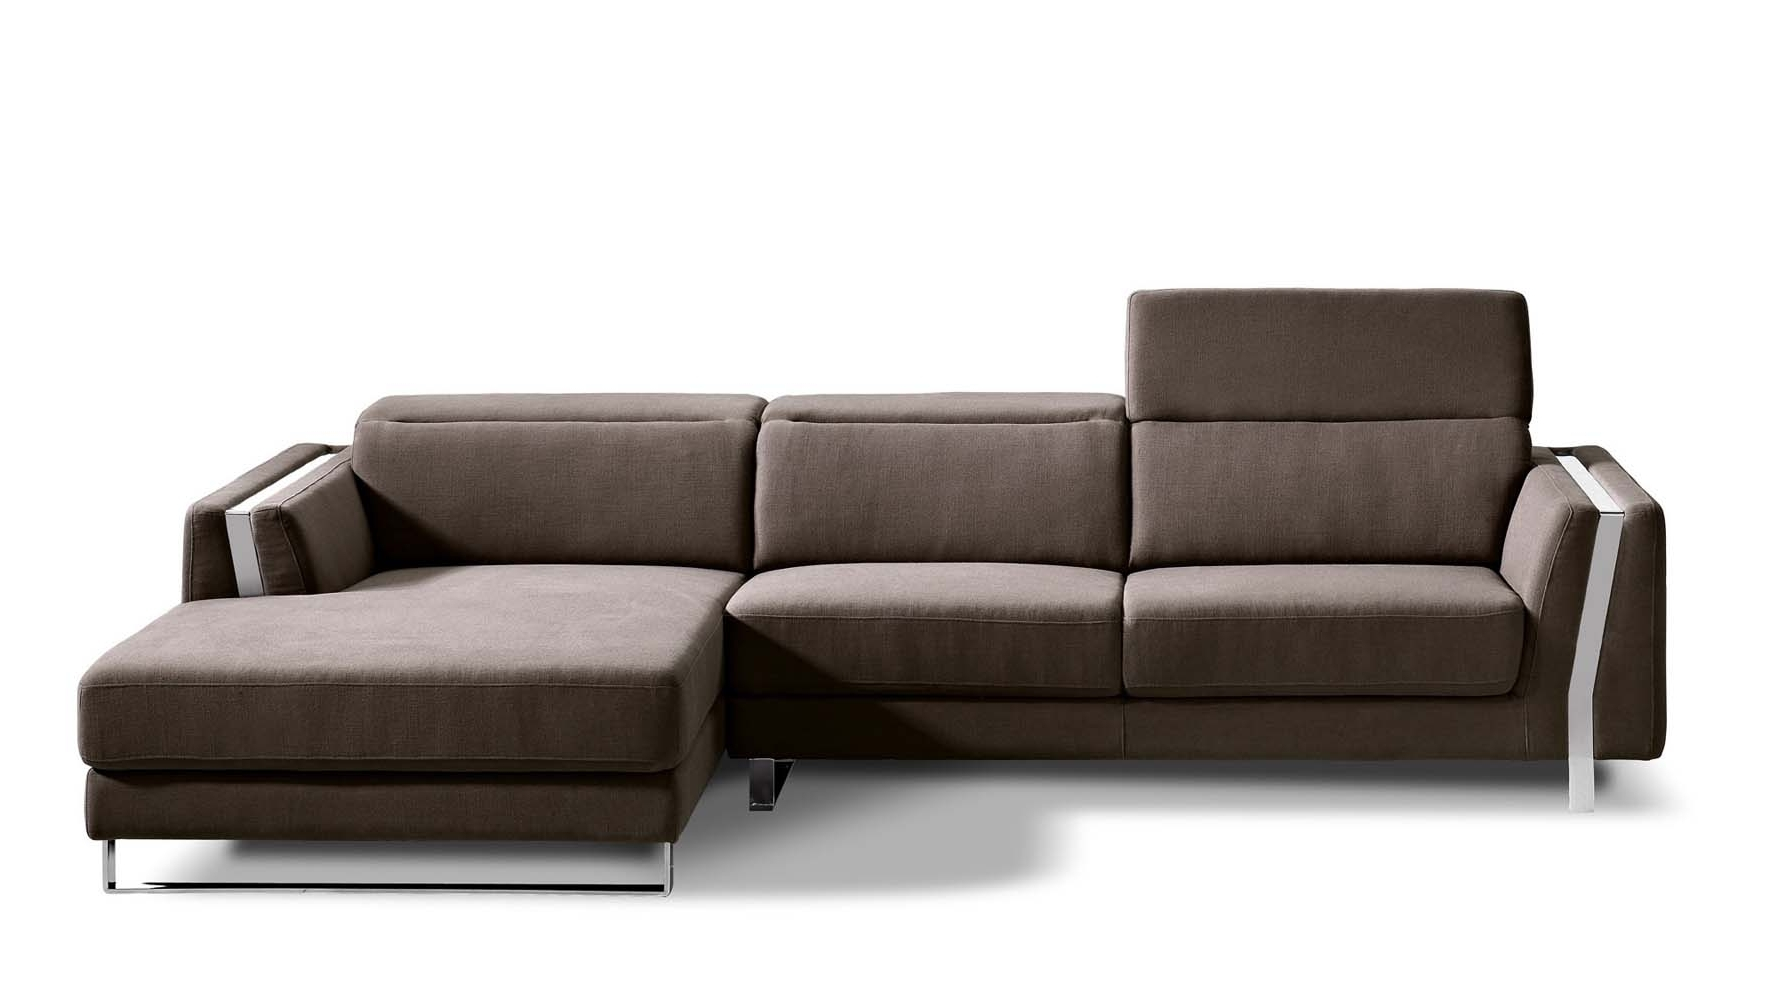 Zuri Furniture Throughout Most Recently Released El Paso Texas Sectional Sofas (View 12 of 15)